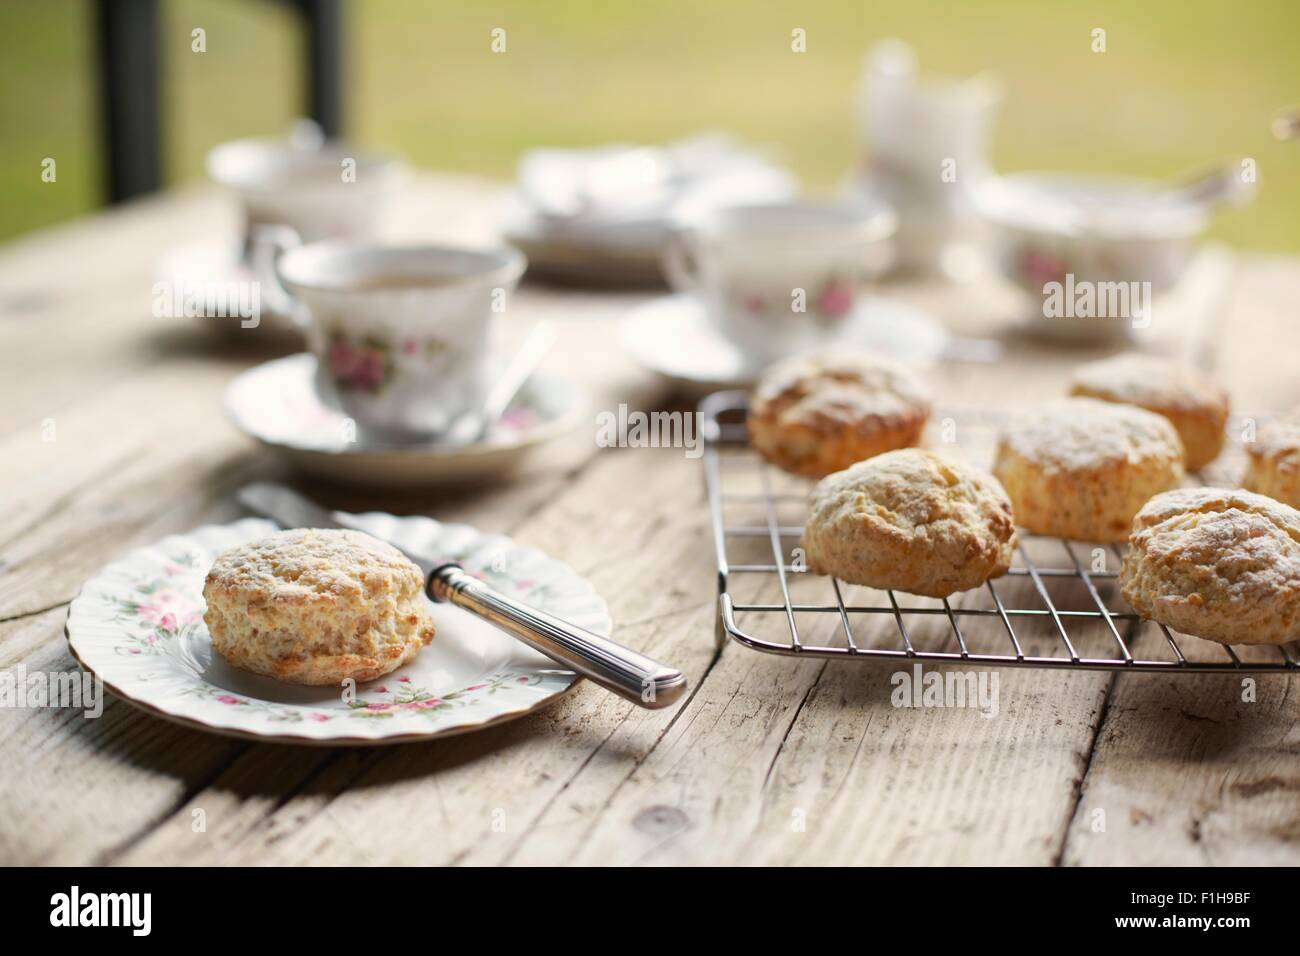 Table with fresh baked scones and afternoon tea - Stock Image